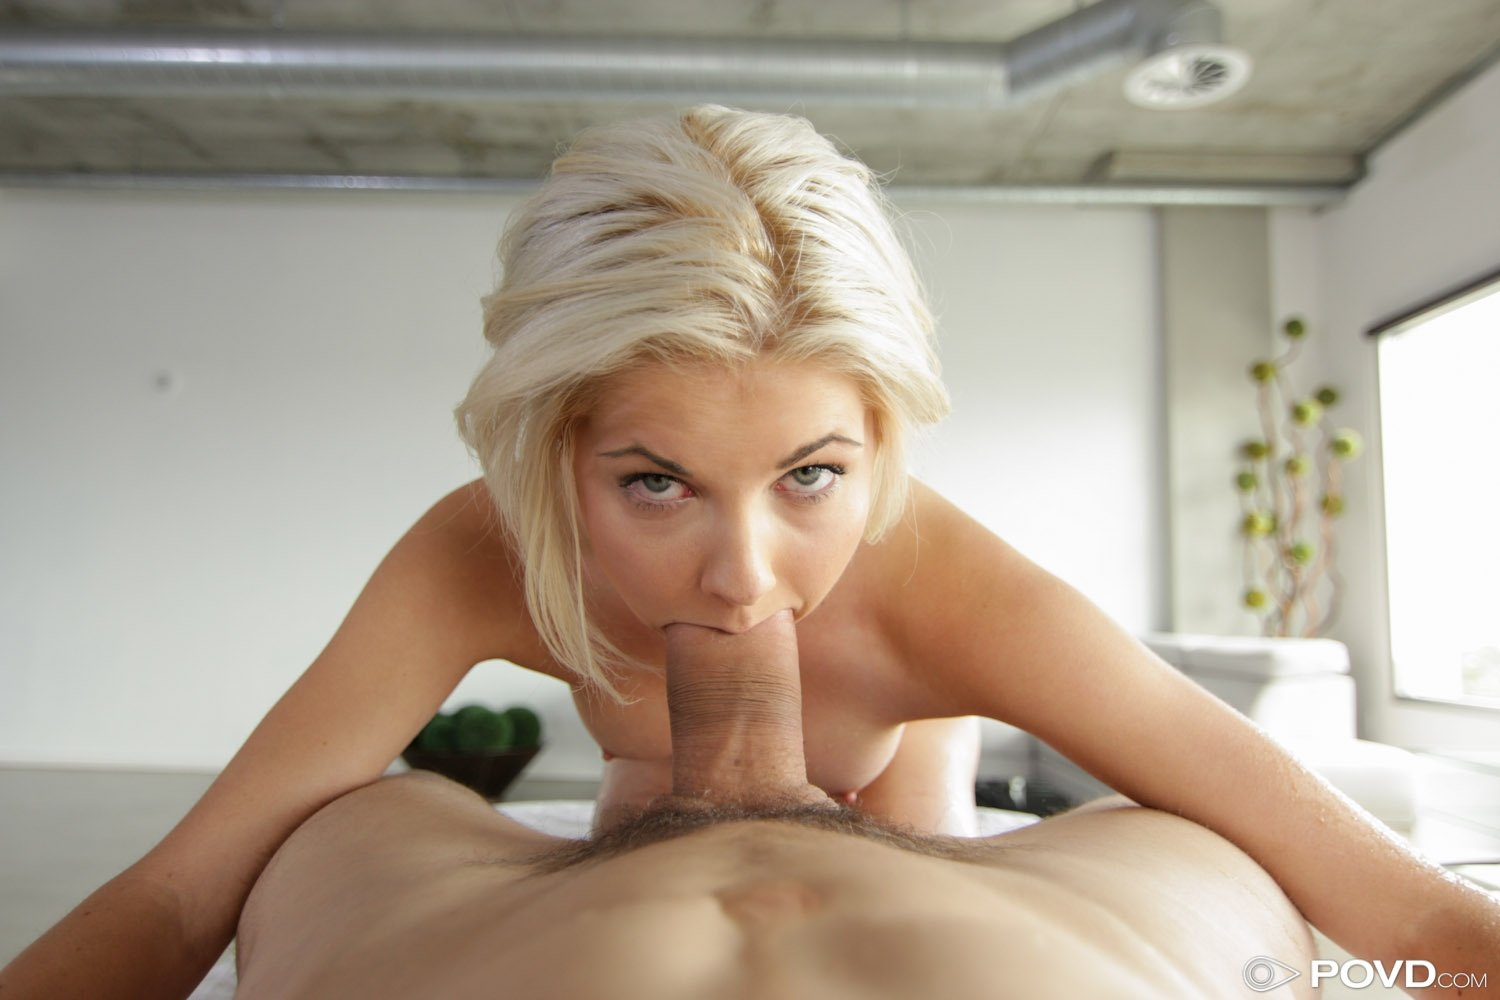 Sloppy Nuru massage with a creampie ending.